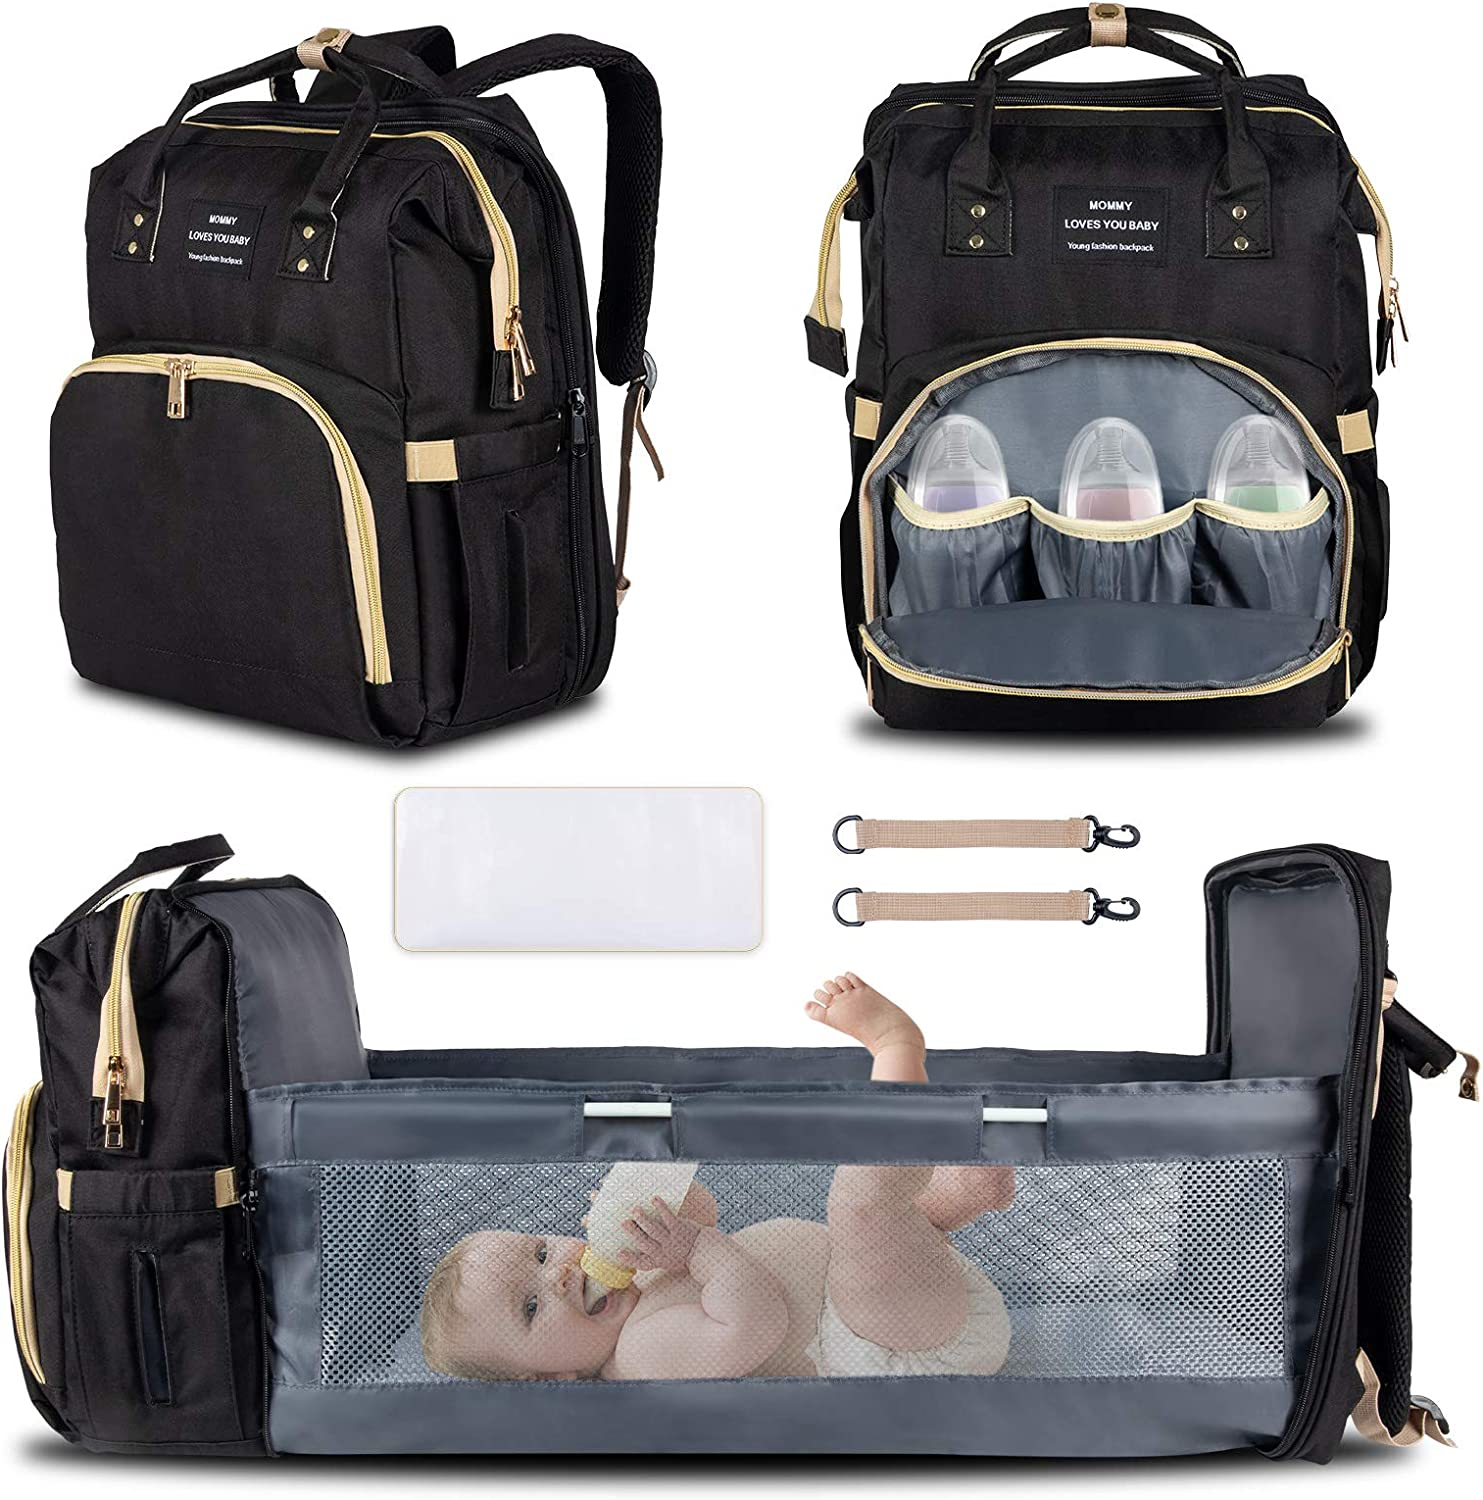 HONGTEYA 3 in 1 Diaper Bag Backpack with Changing Station Pad Baby Diaper Bag